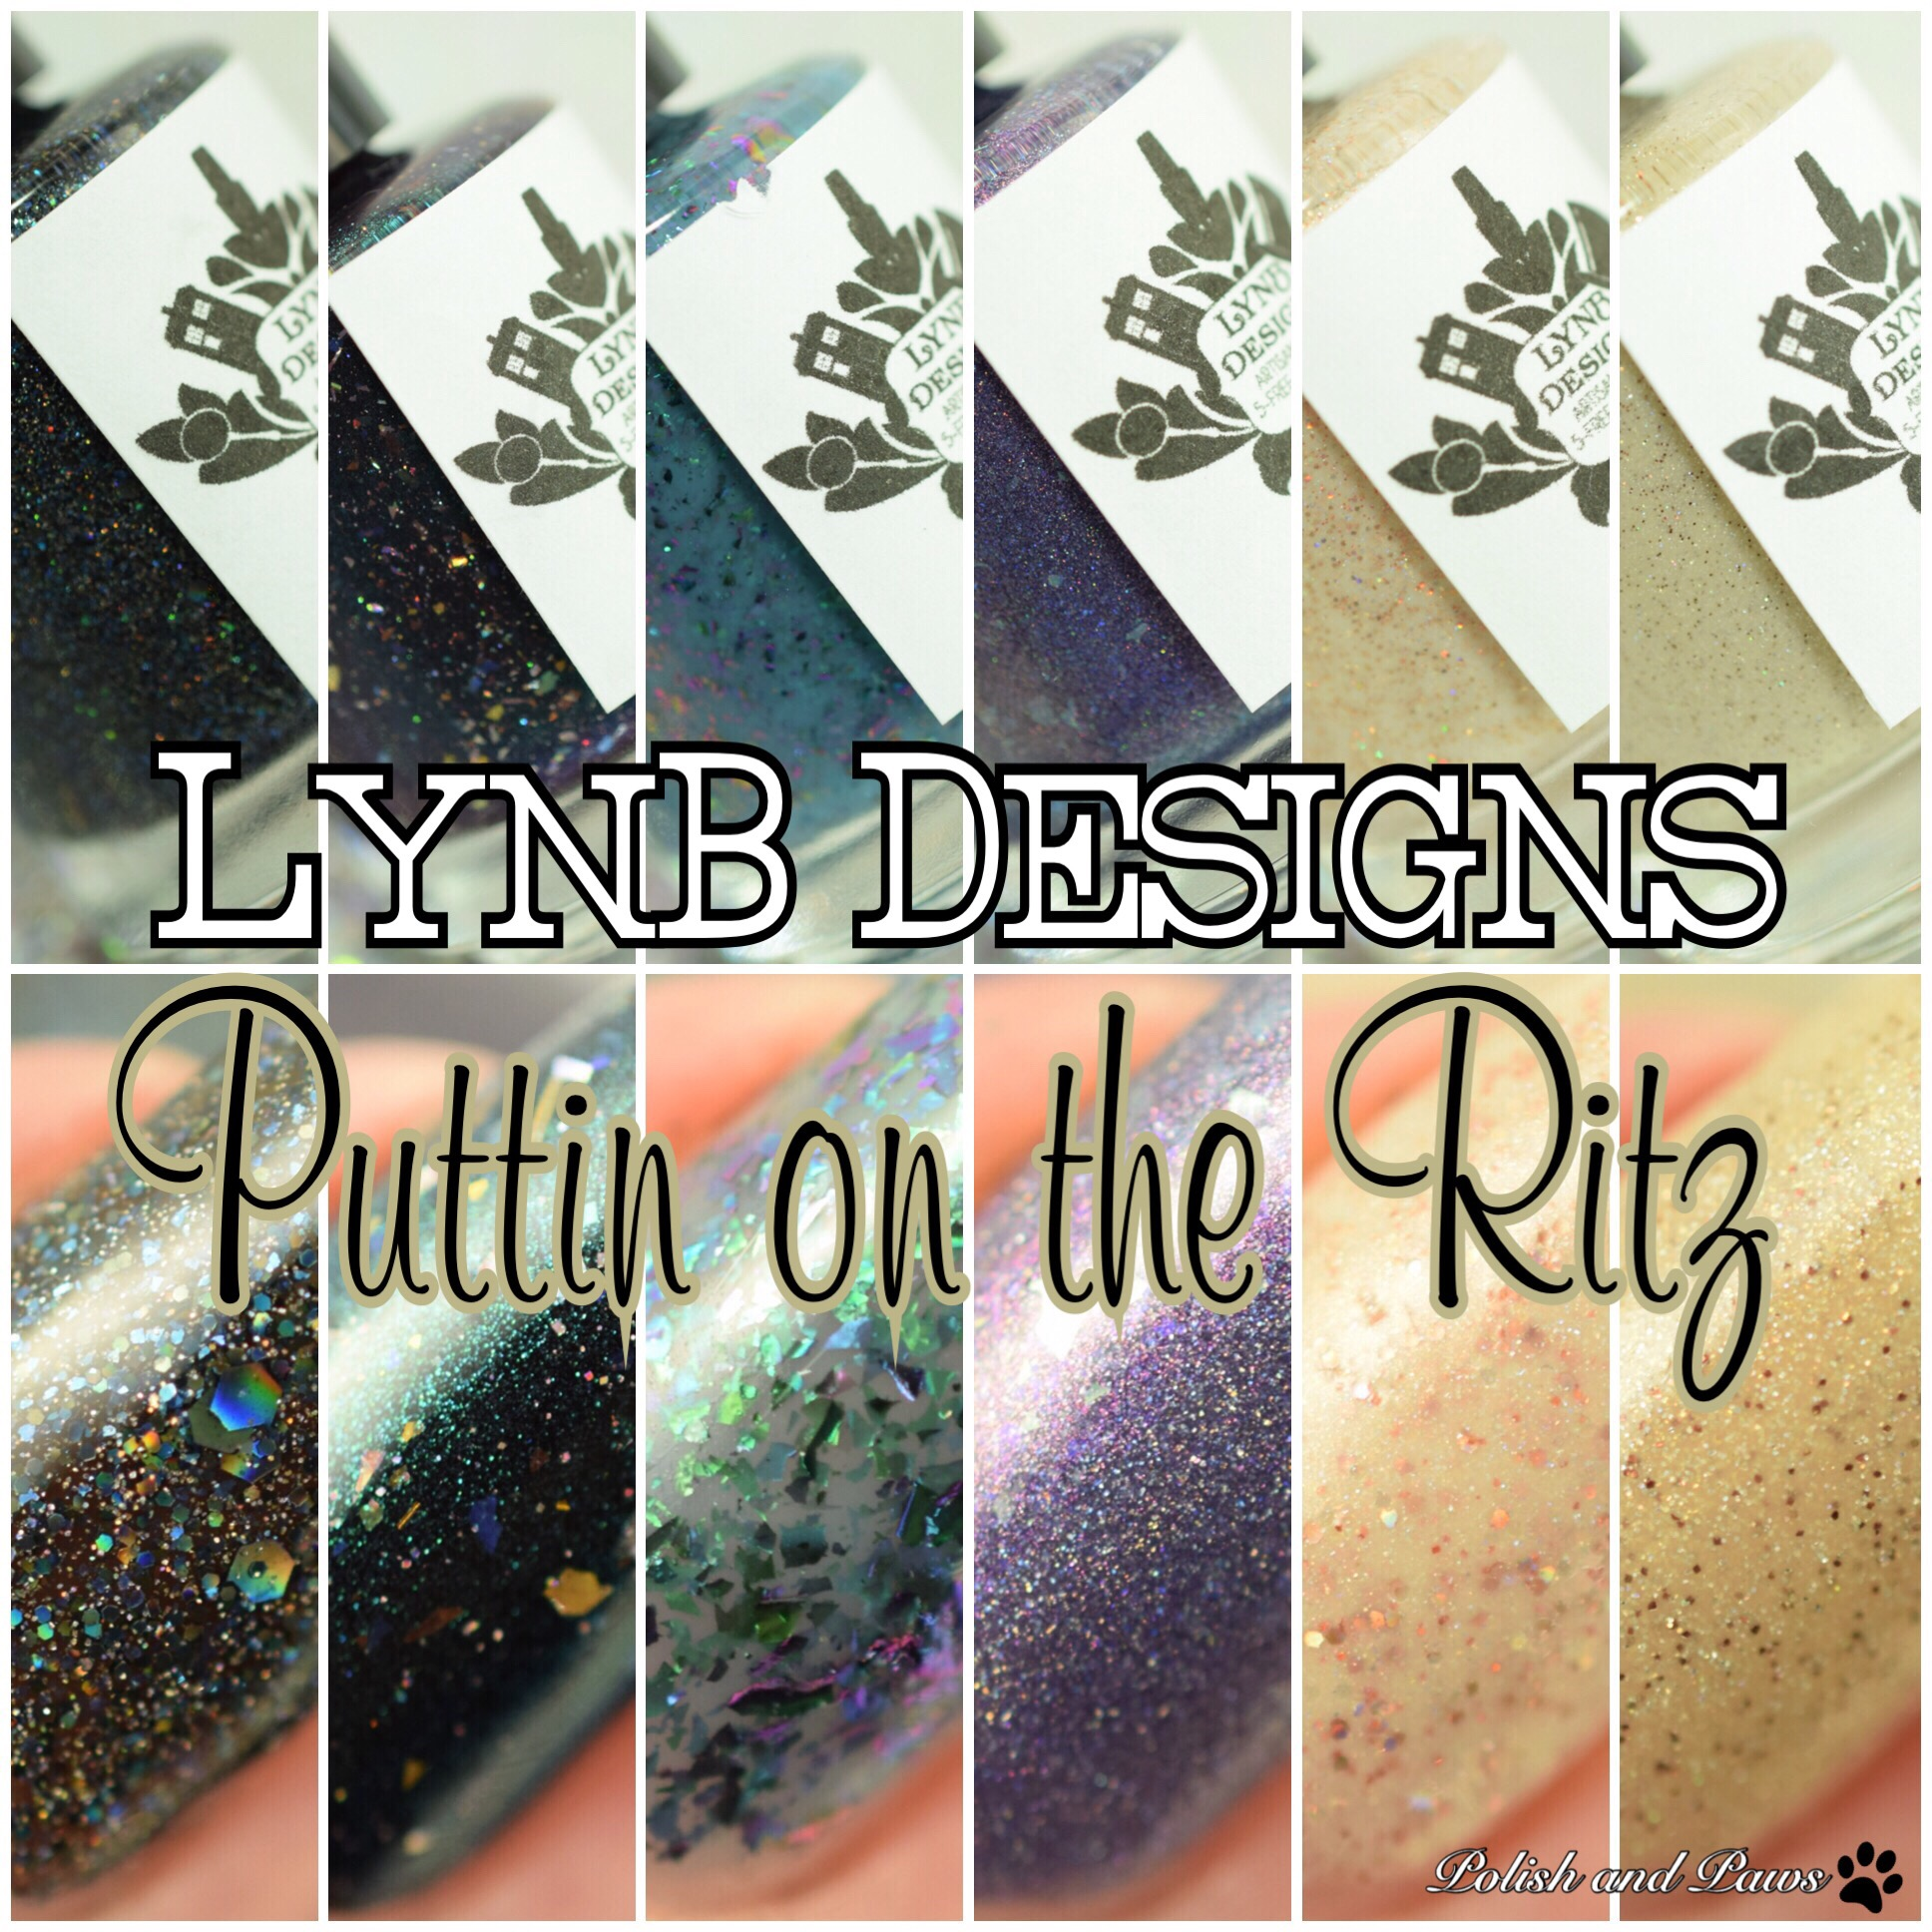 Vip these de lite ful orchid designs include 9 designs which can be - Lynb Designs Puttin On The Ritz